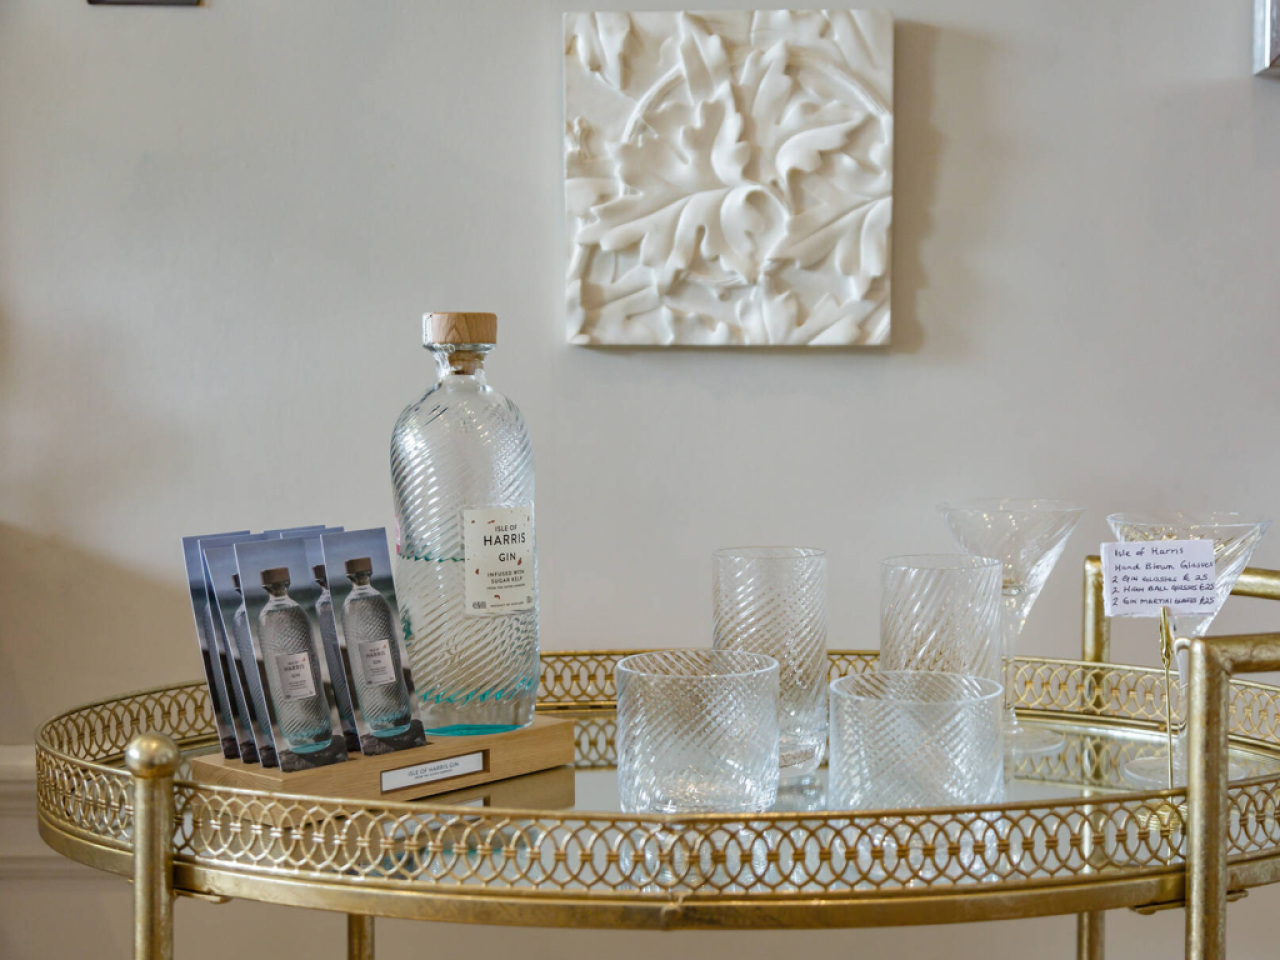 Enjoy a complimentary Isle of Harris Gin Tasting during your stay